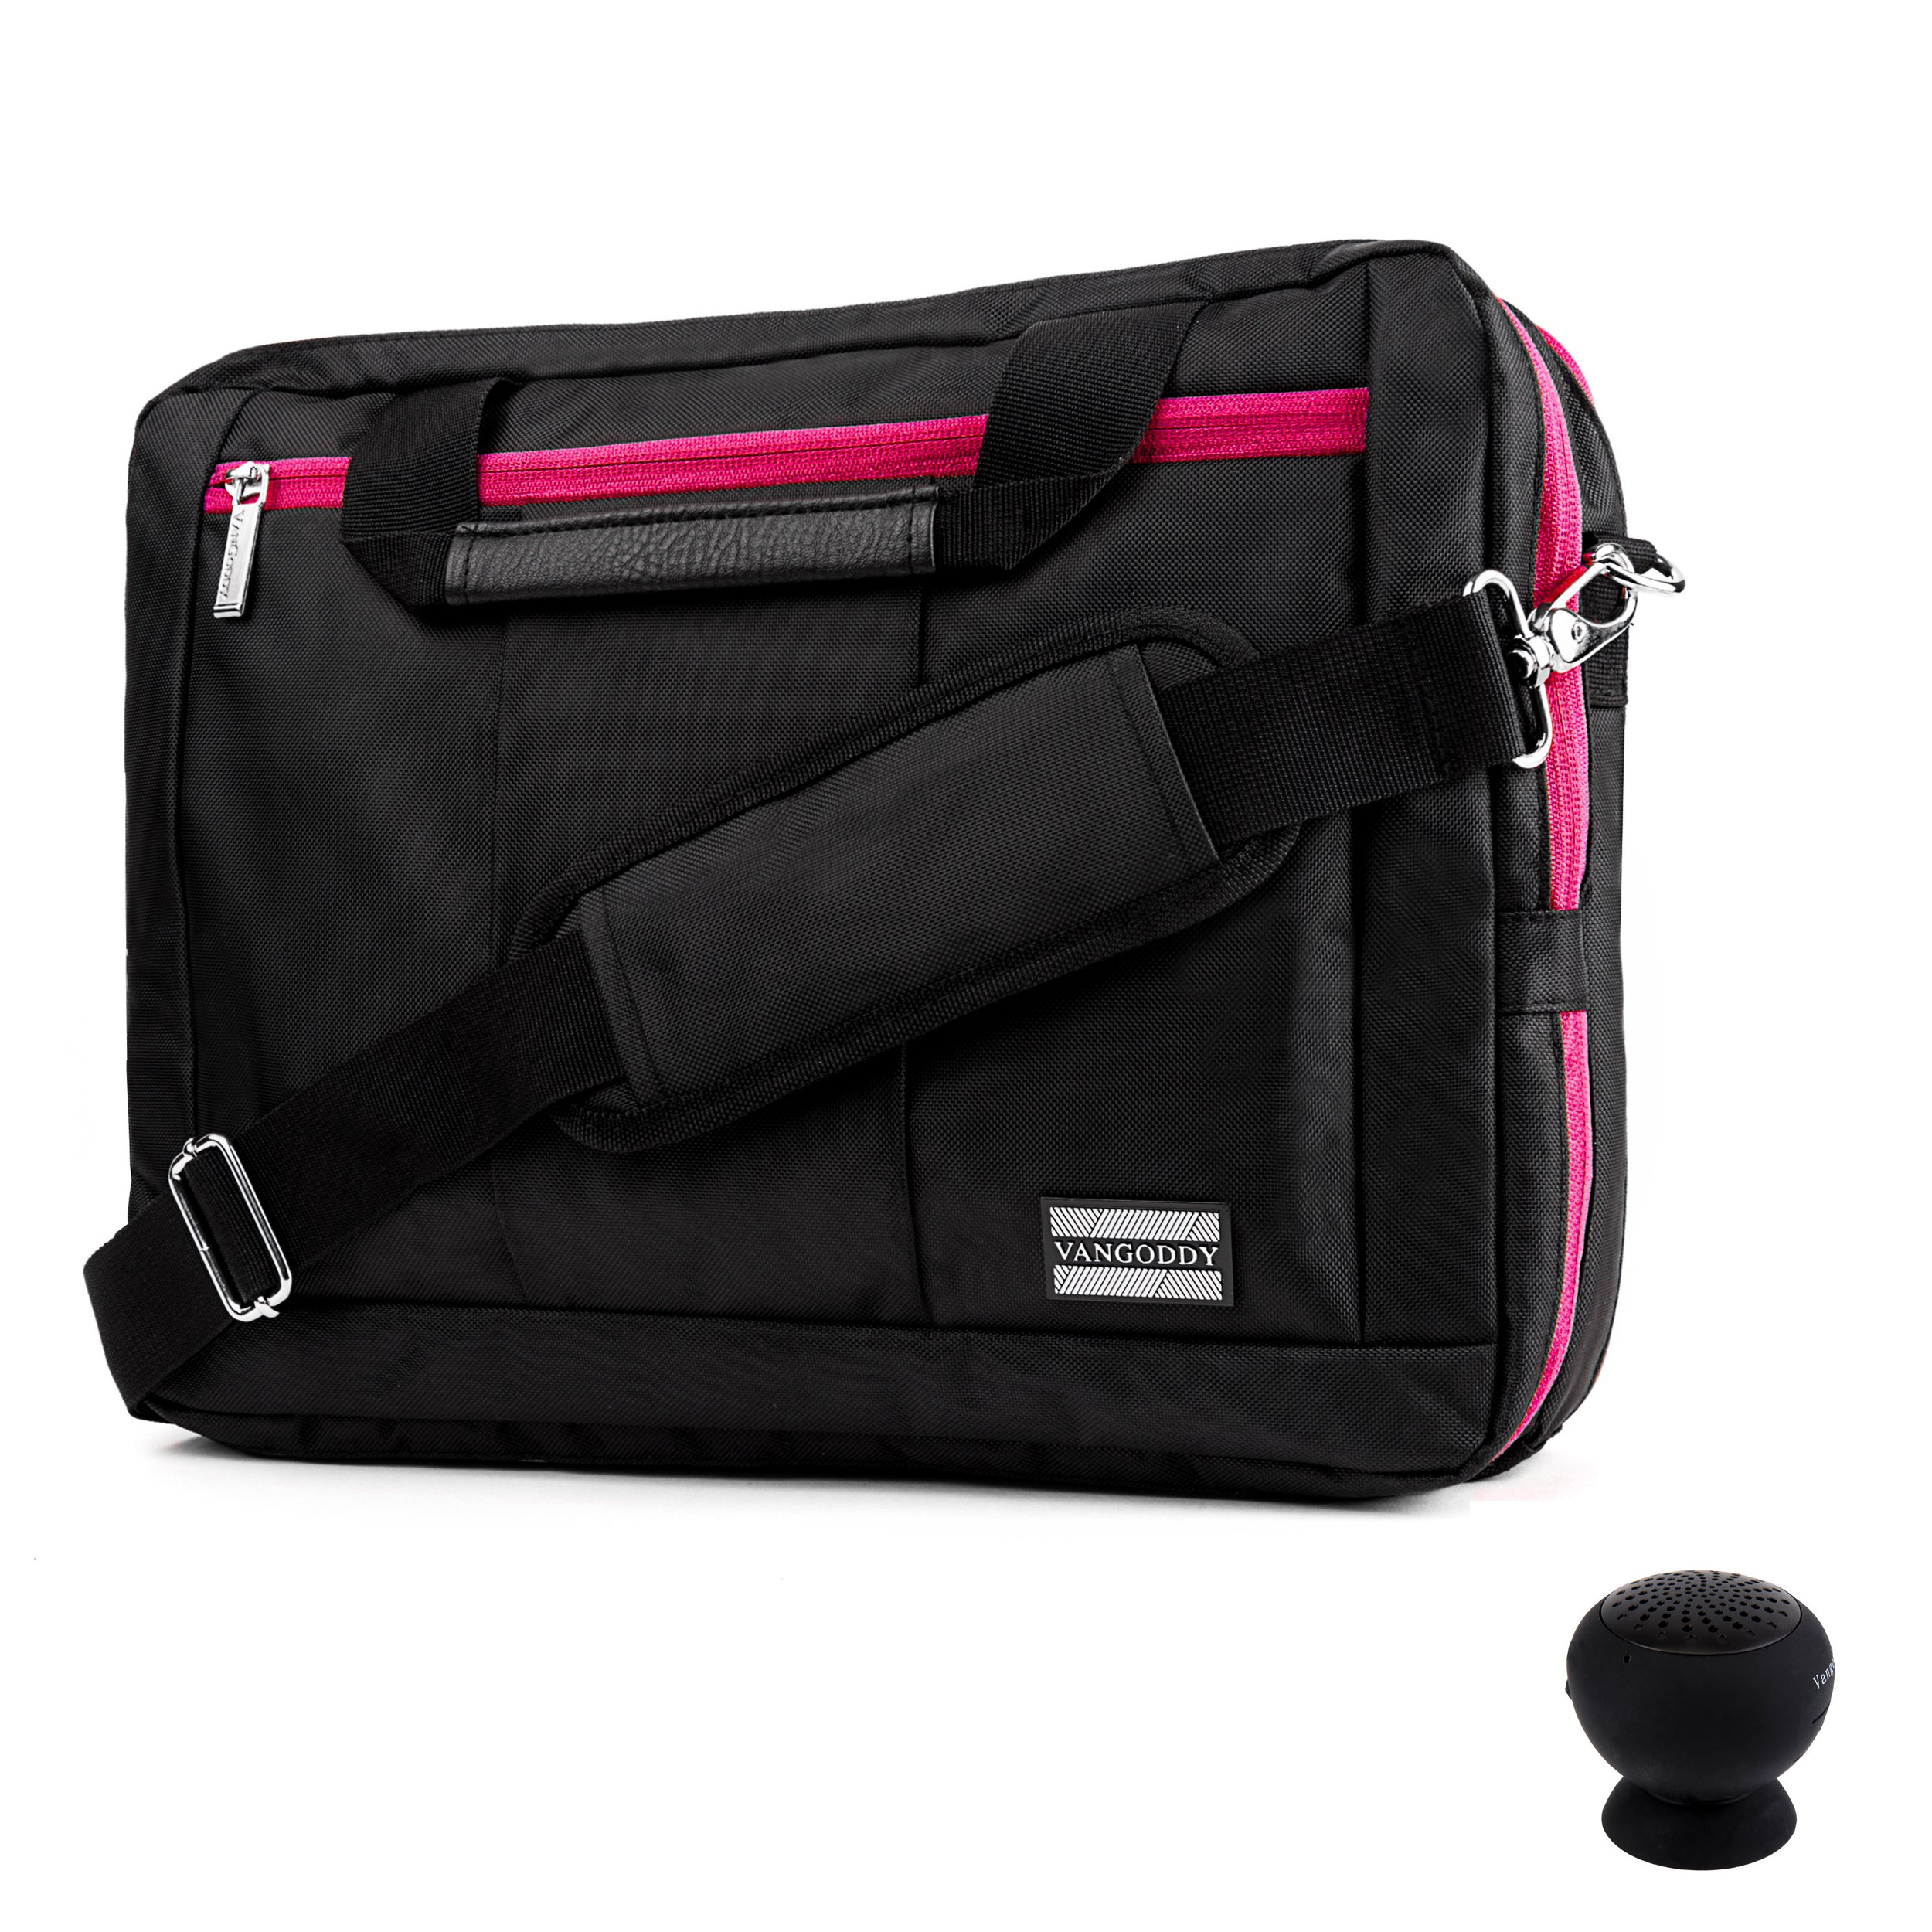 VANGODDY Microsoft Surface Pro 3/4/2017 (Edition) Lightweight Messenger Bag Convertible To Backpack (with USB Speaker)